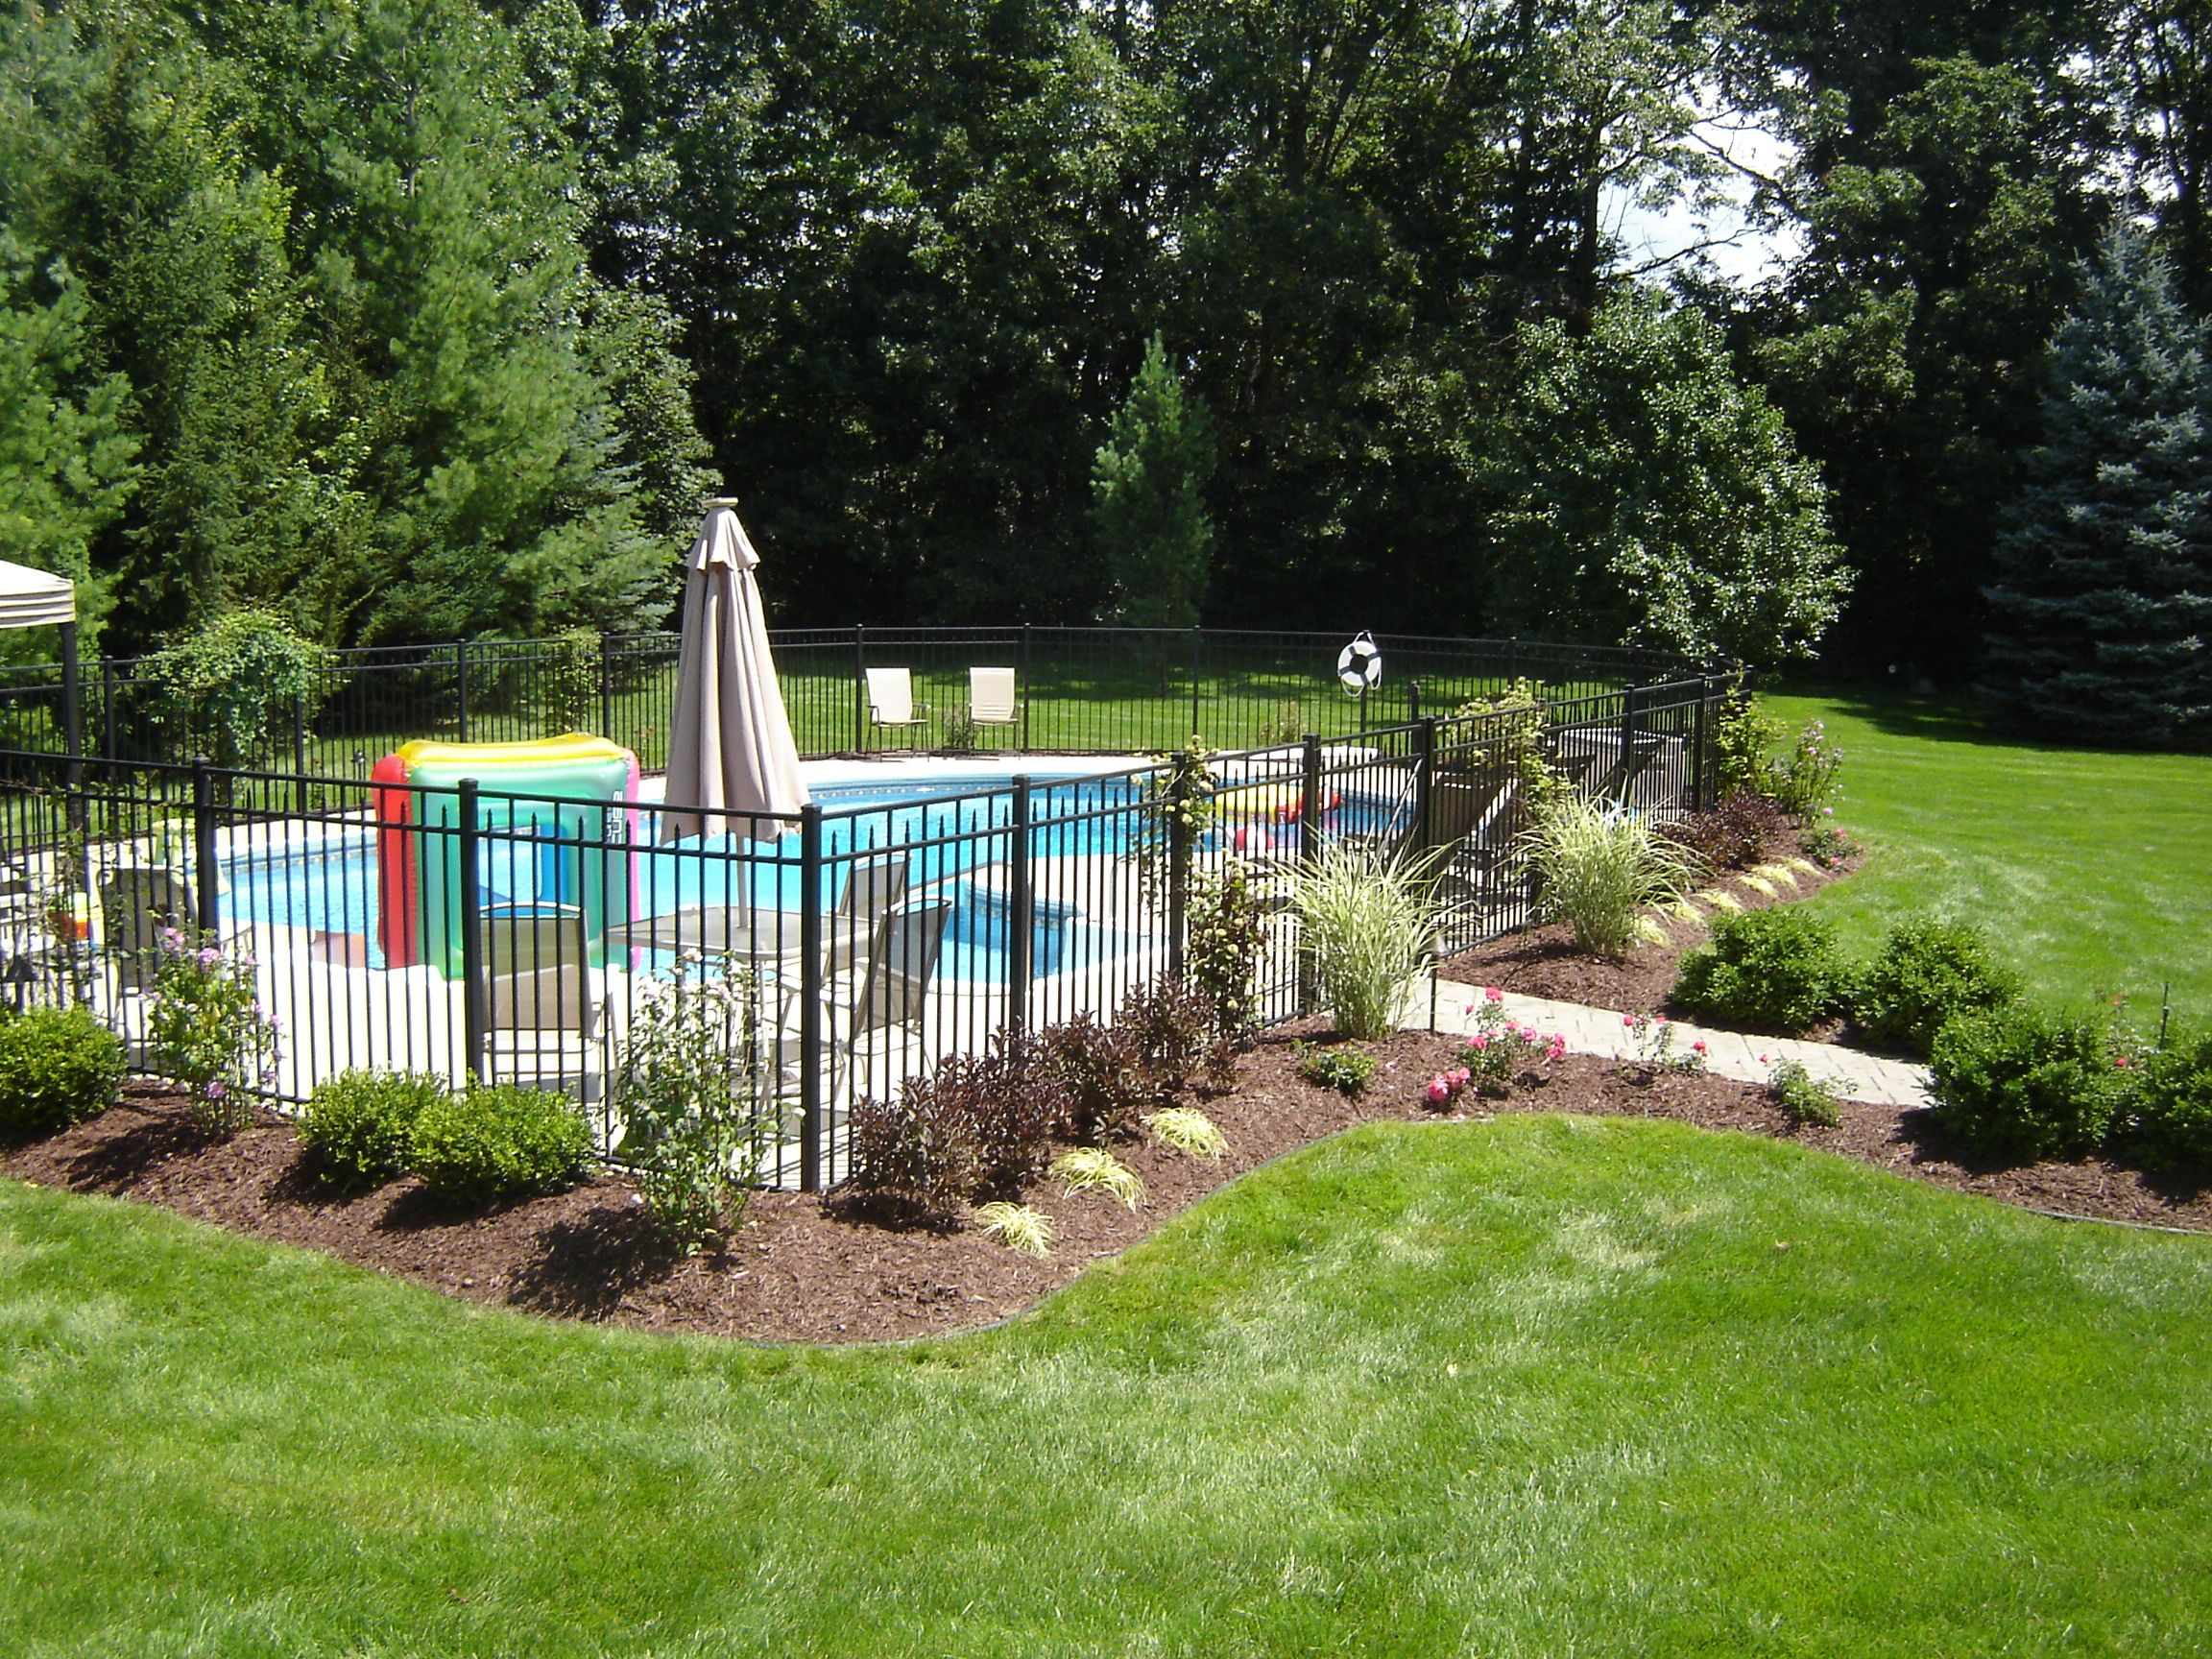 39 best pool ideas images on Pinterest | Pool fence, Backyard ...